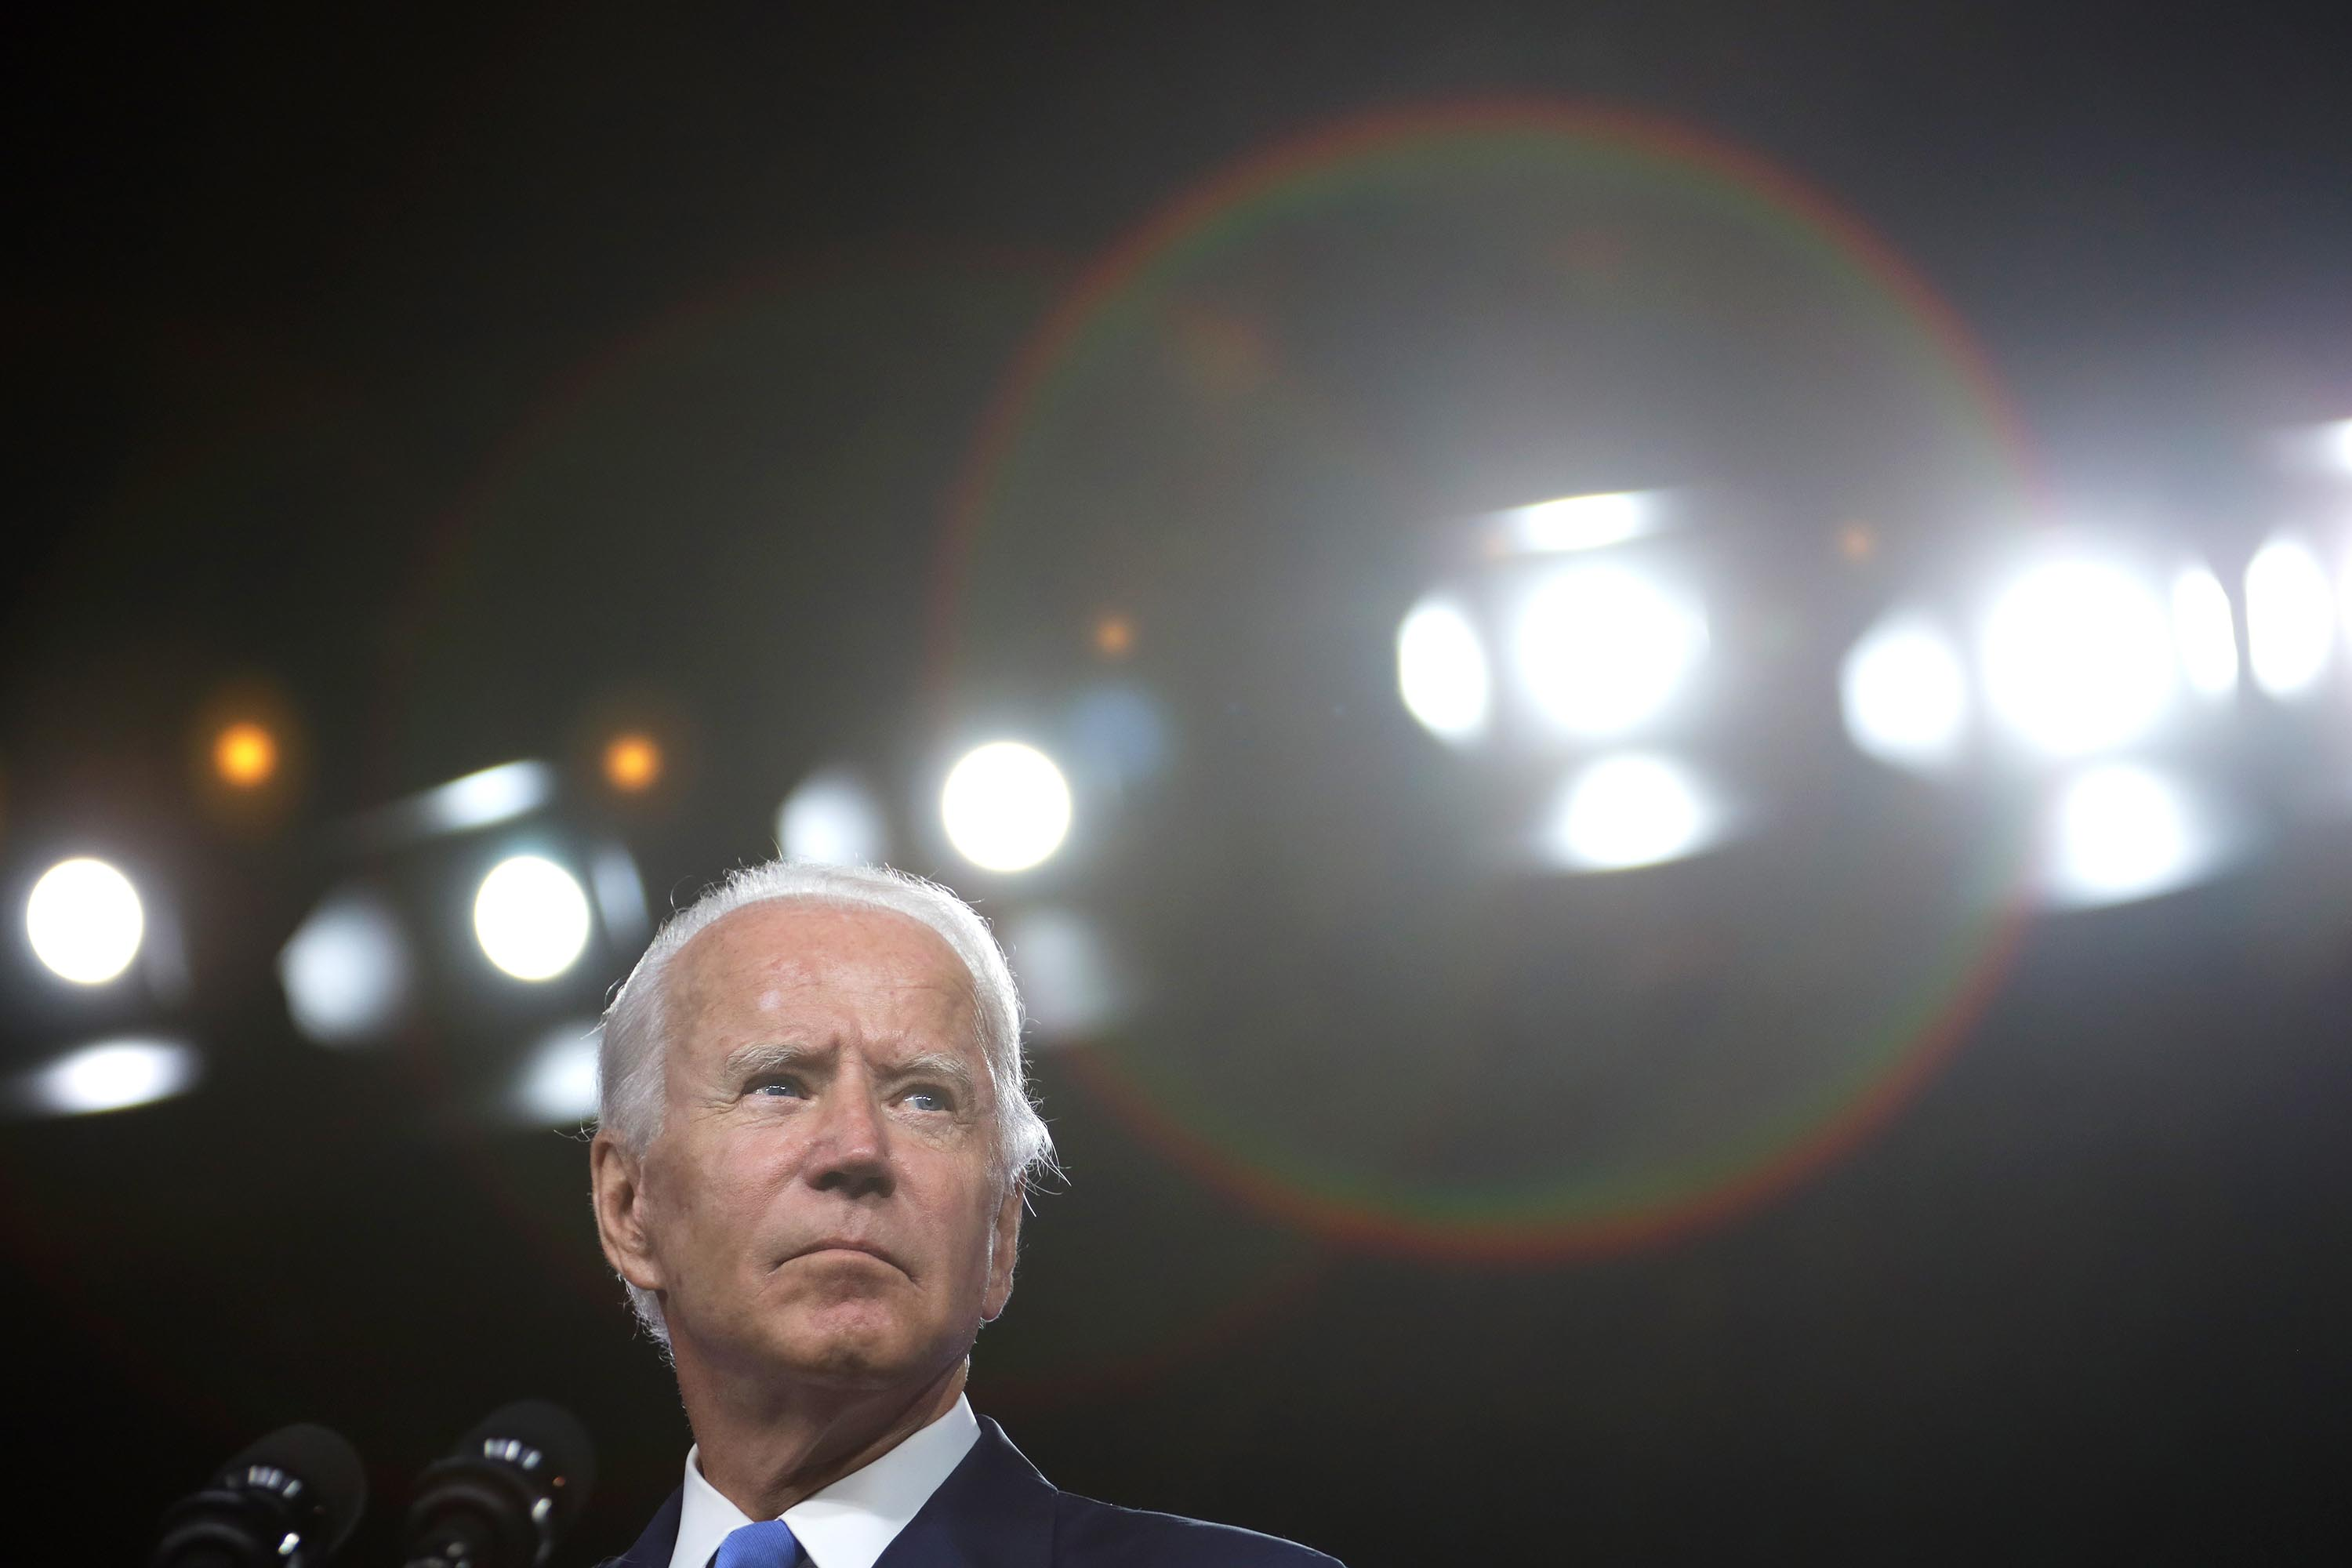 20 former Republican US attorneys endorse Biden campaign